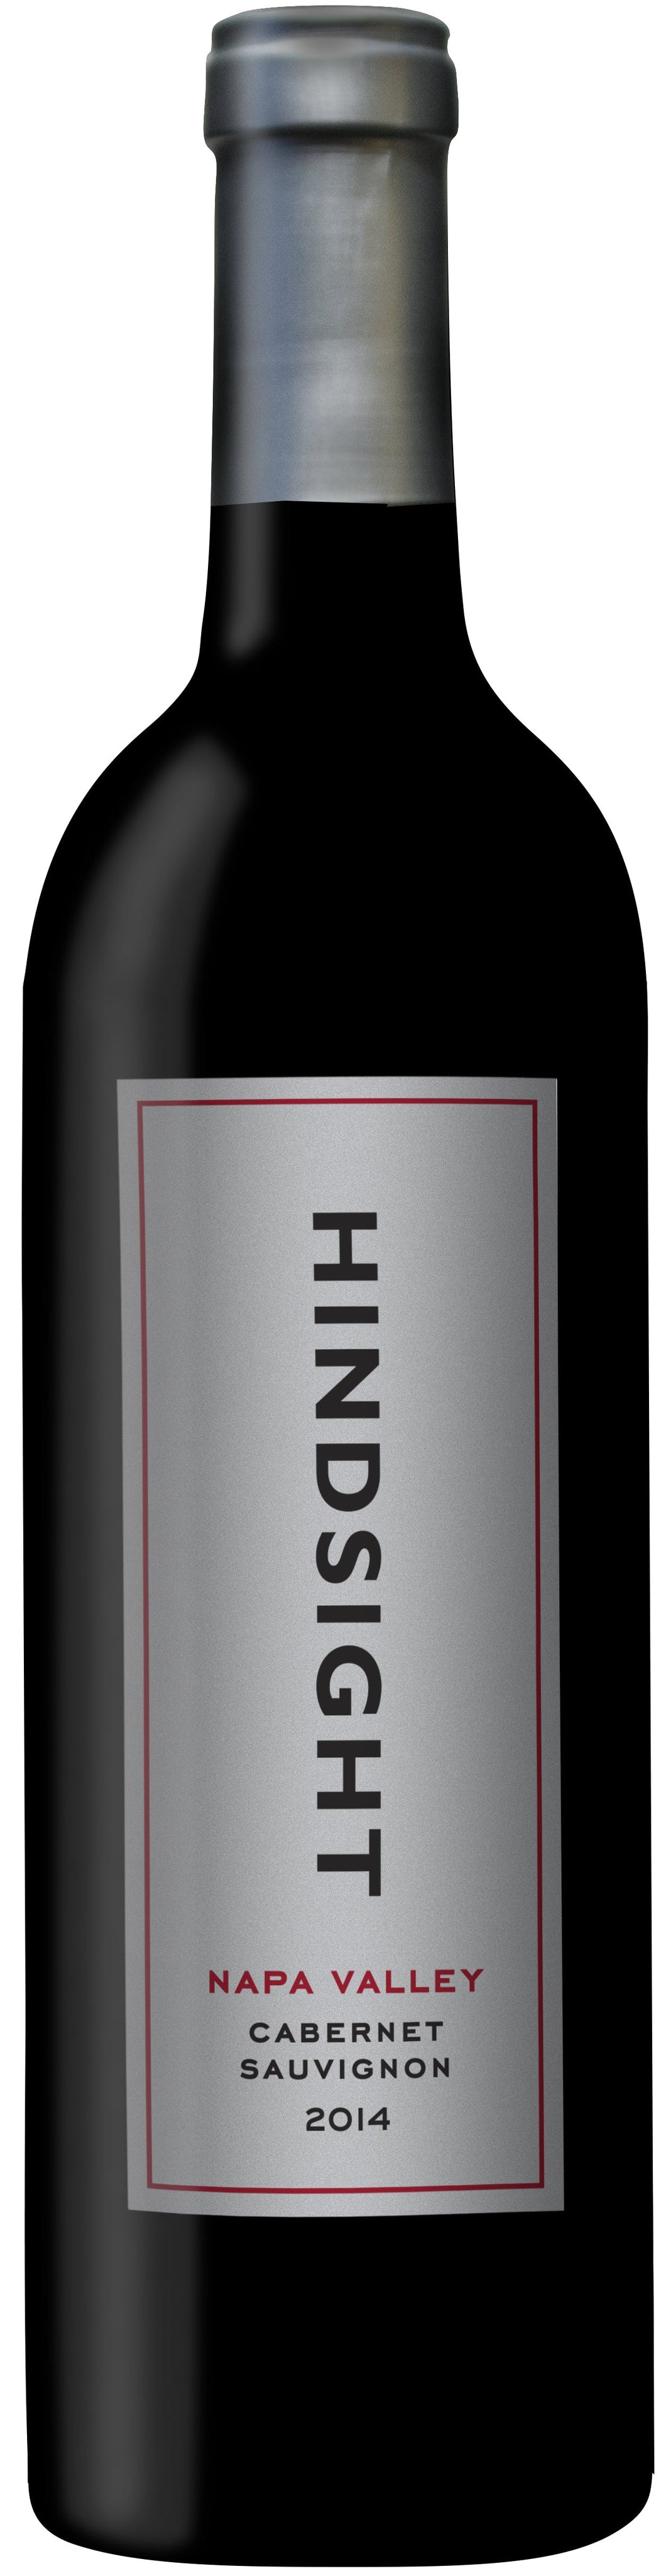 Hindsight Napa Valley Cabernet Sauvignon 2014 - Grapes & Hops Deli